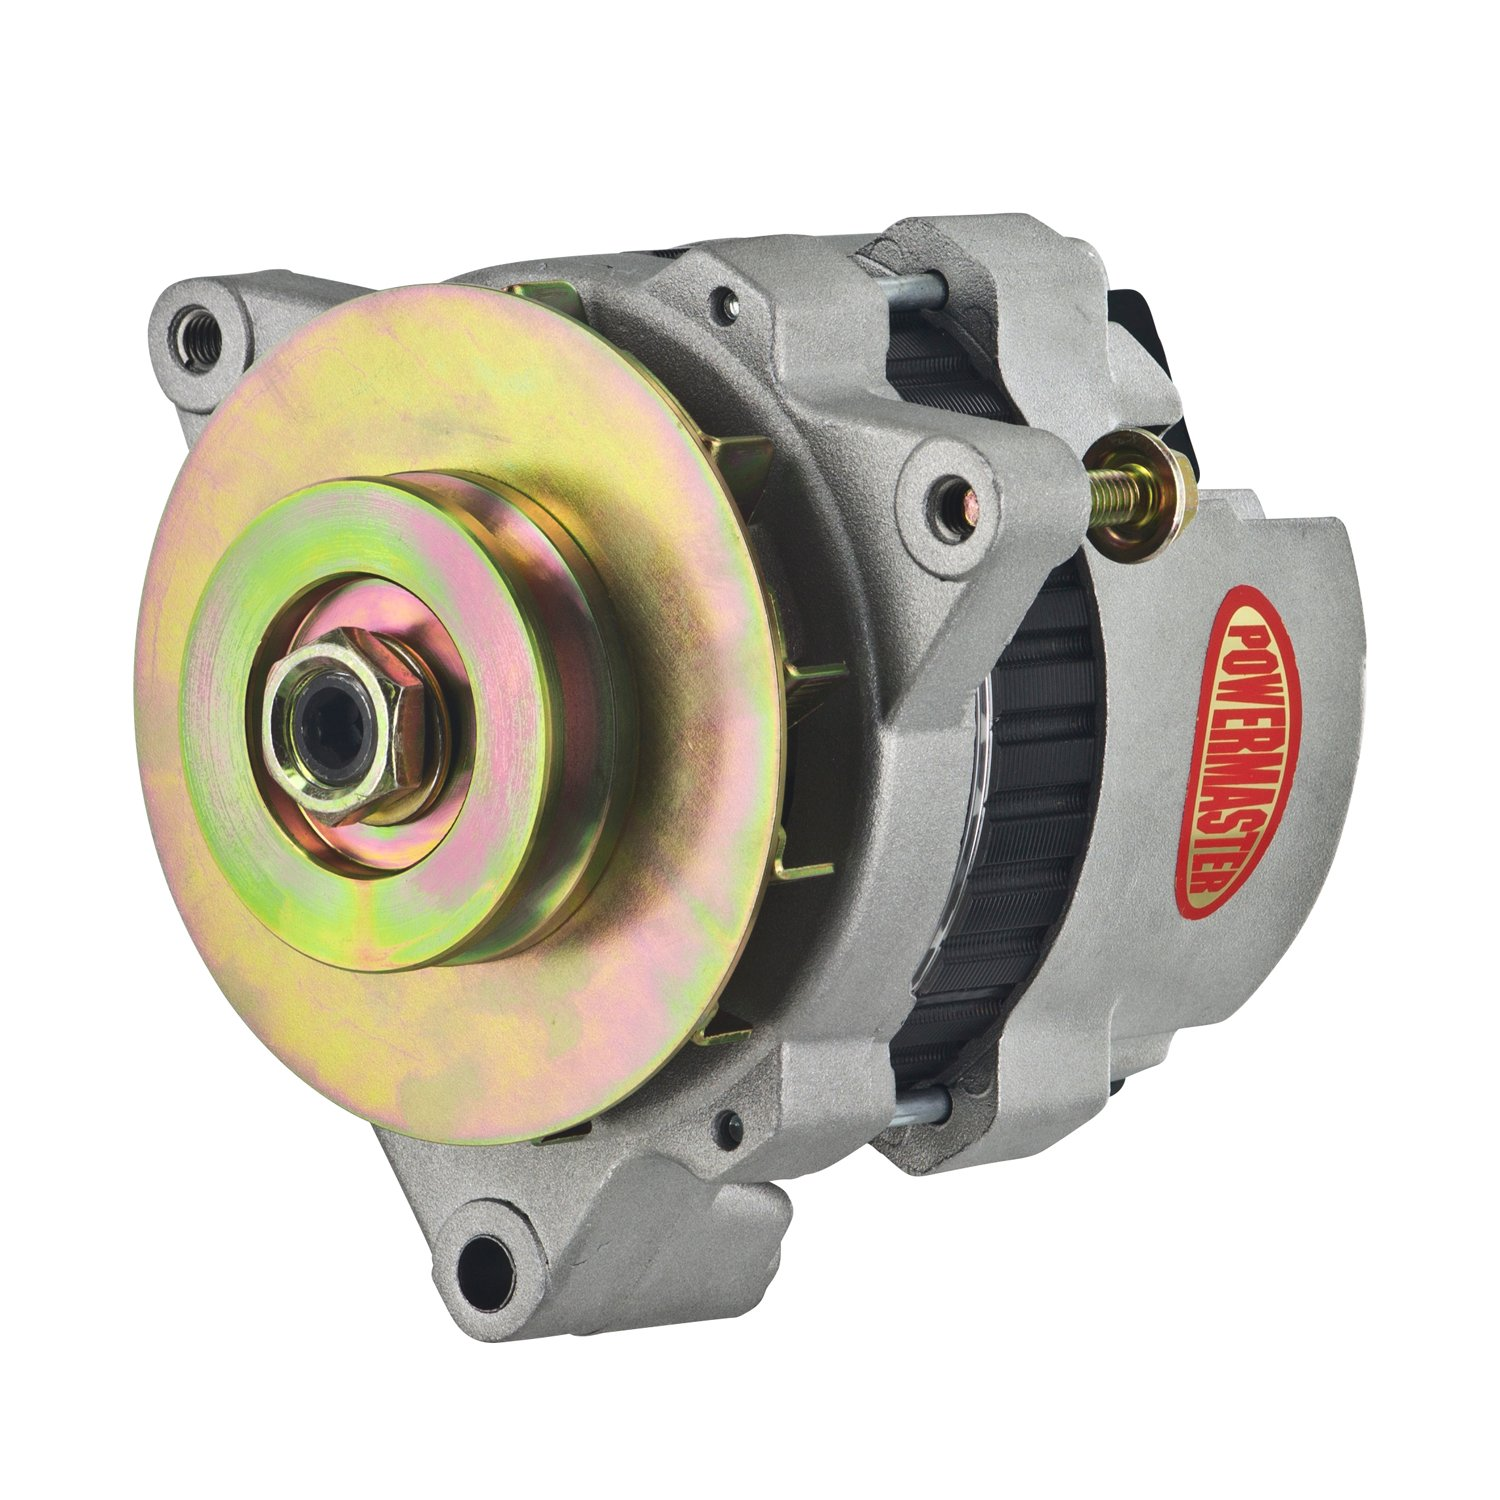 Powermaster 7476-104 - Powermaster GM CS121 Style 5x5 Compact Race Alternators